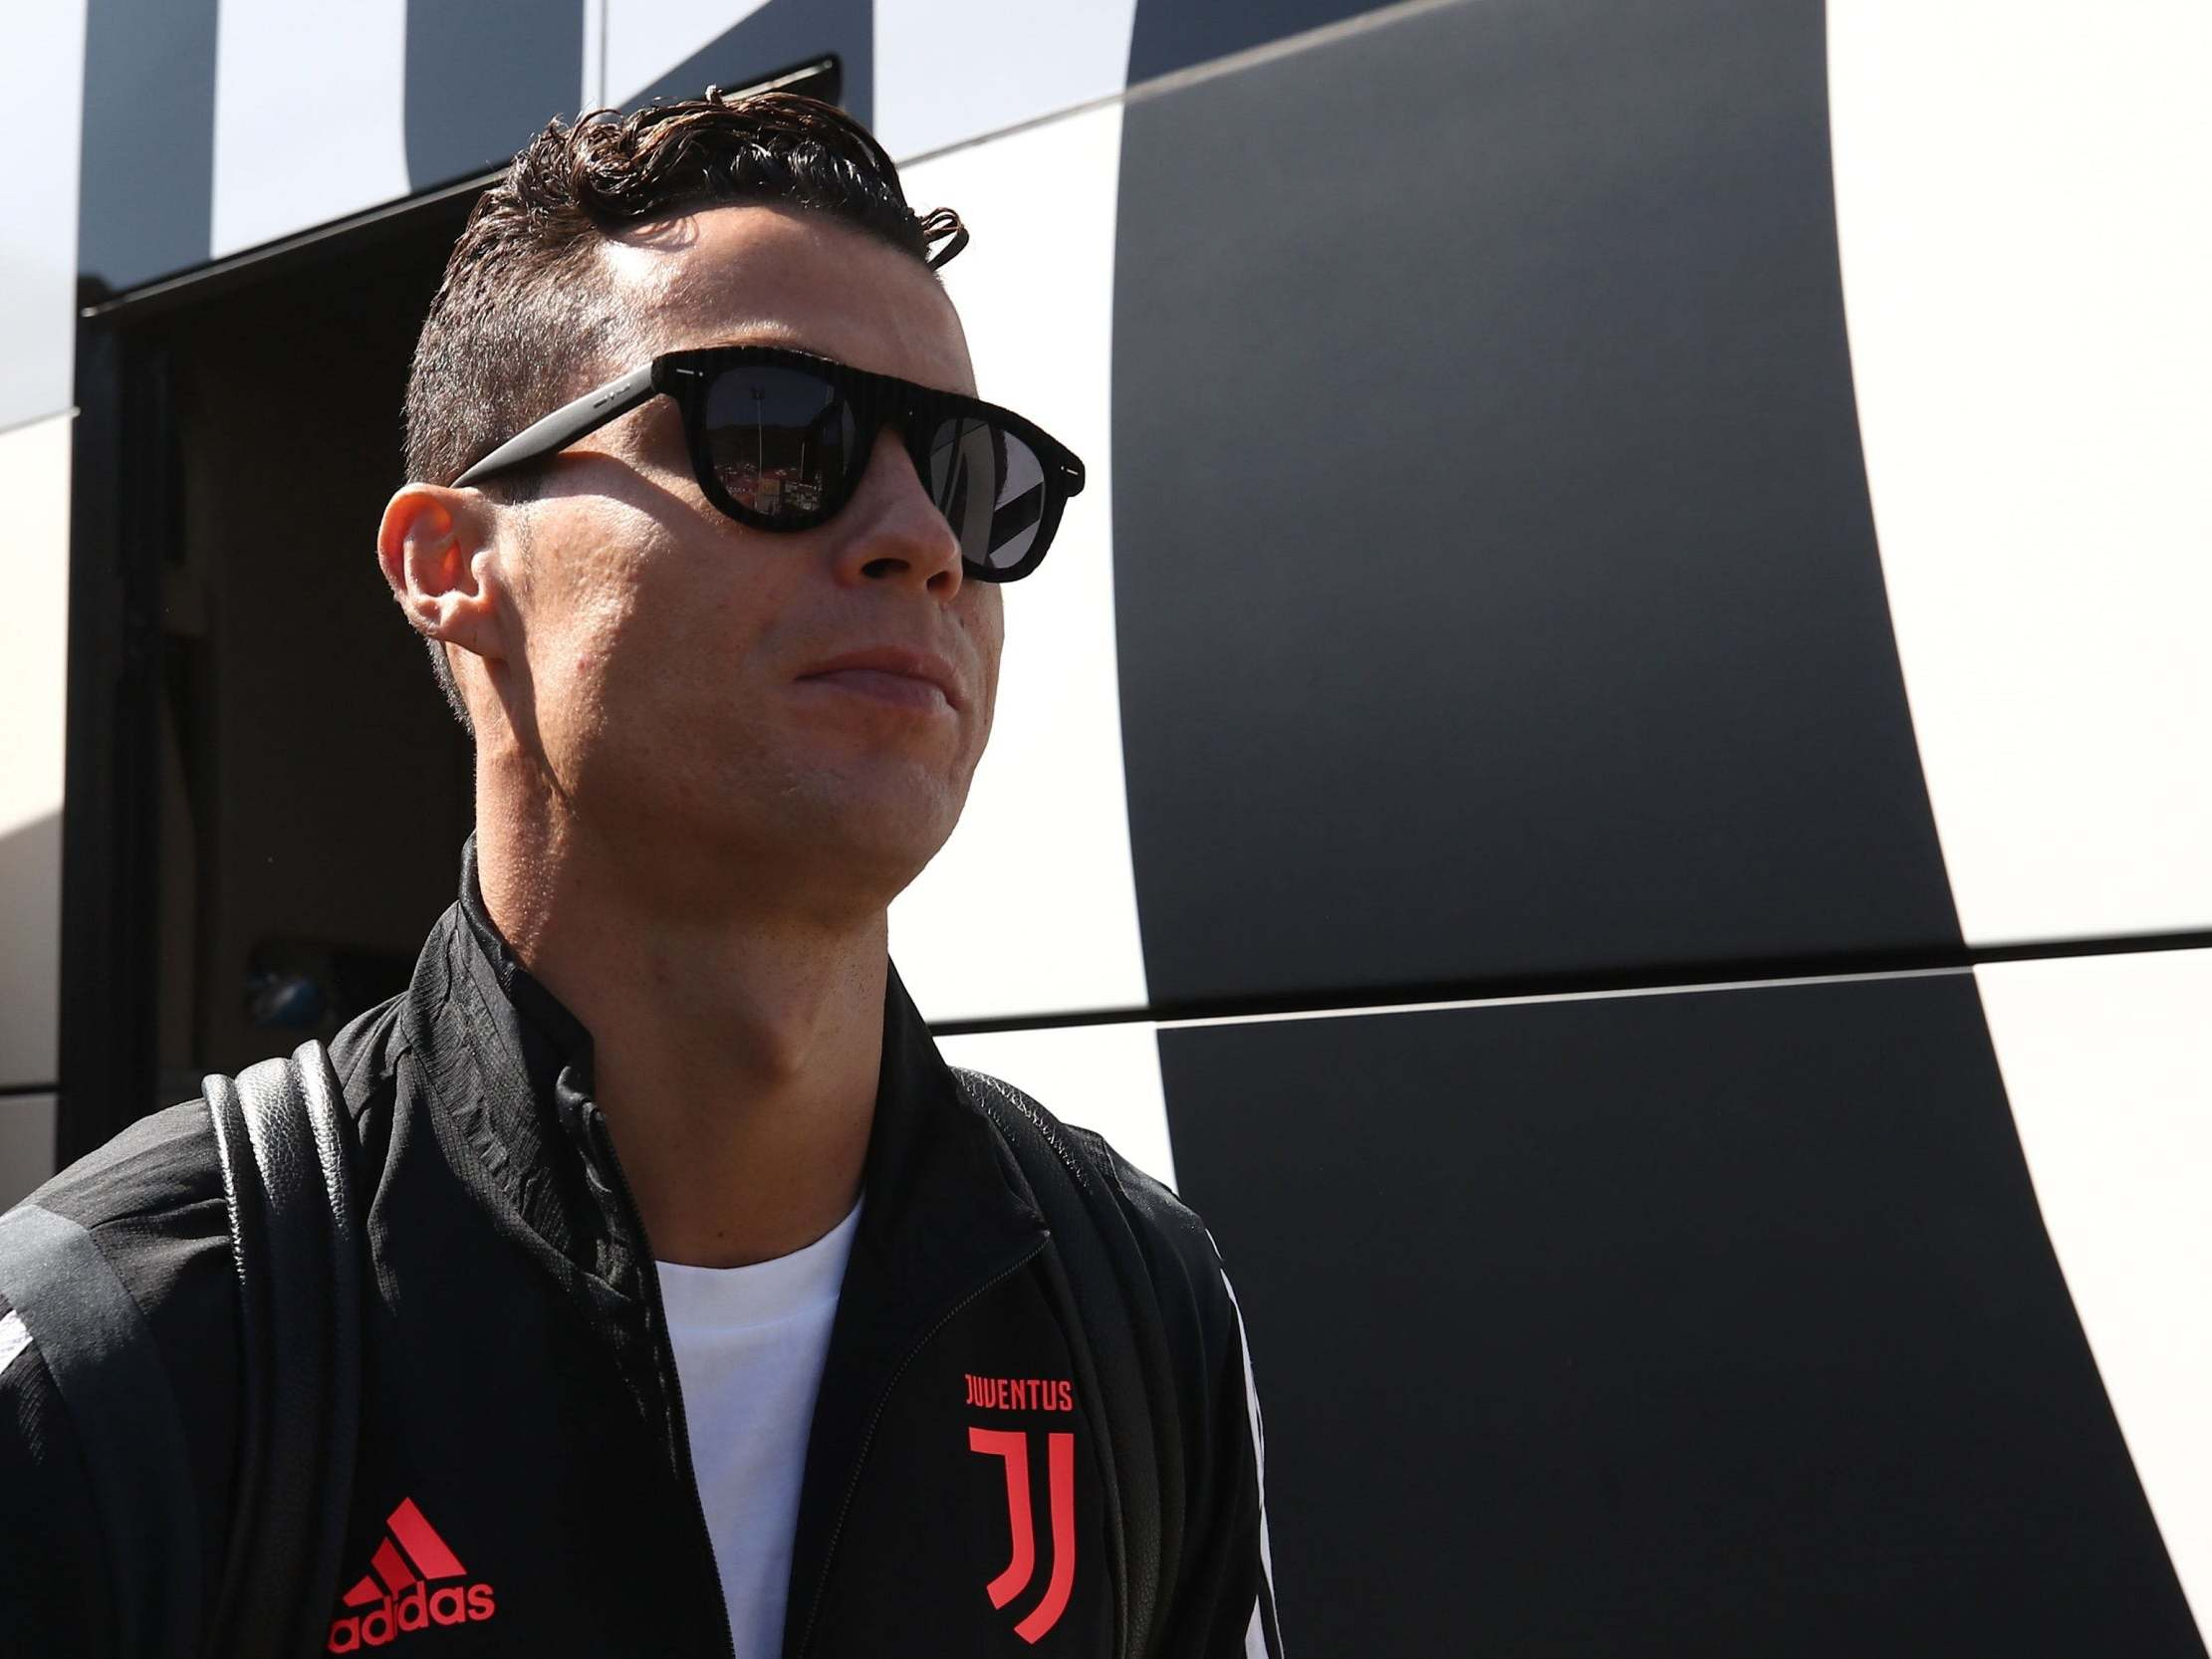 Cristiano Ronaldo admits paying £300,000 to silence woman who accused him of rape